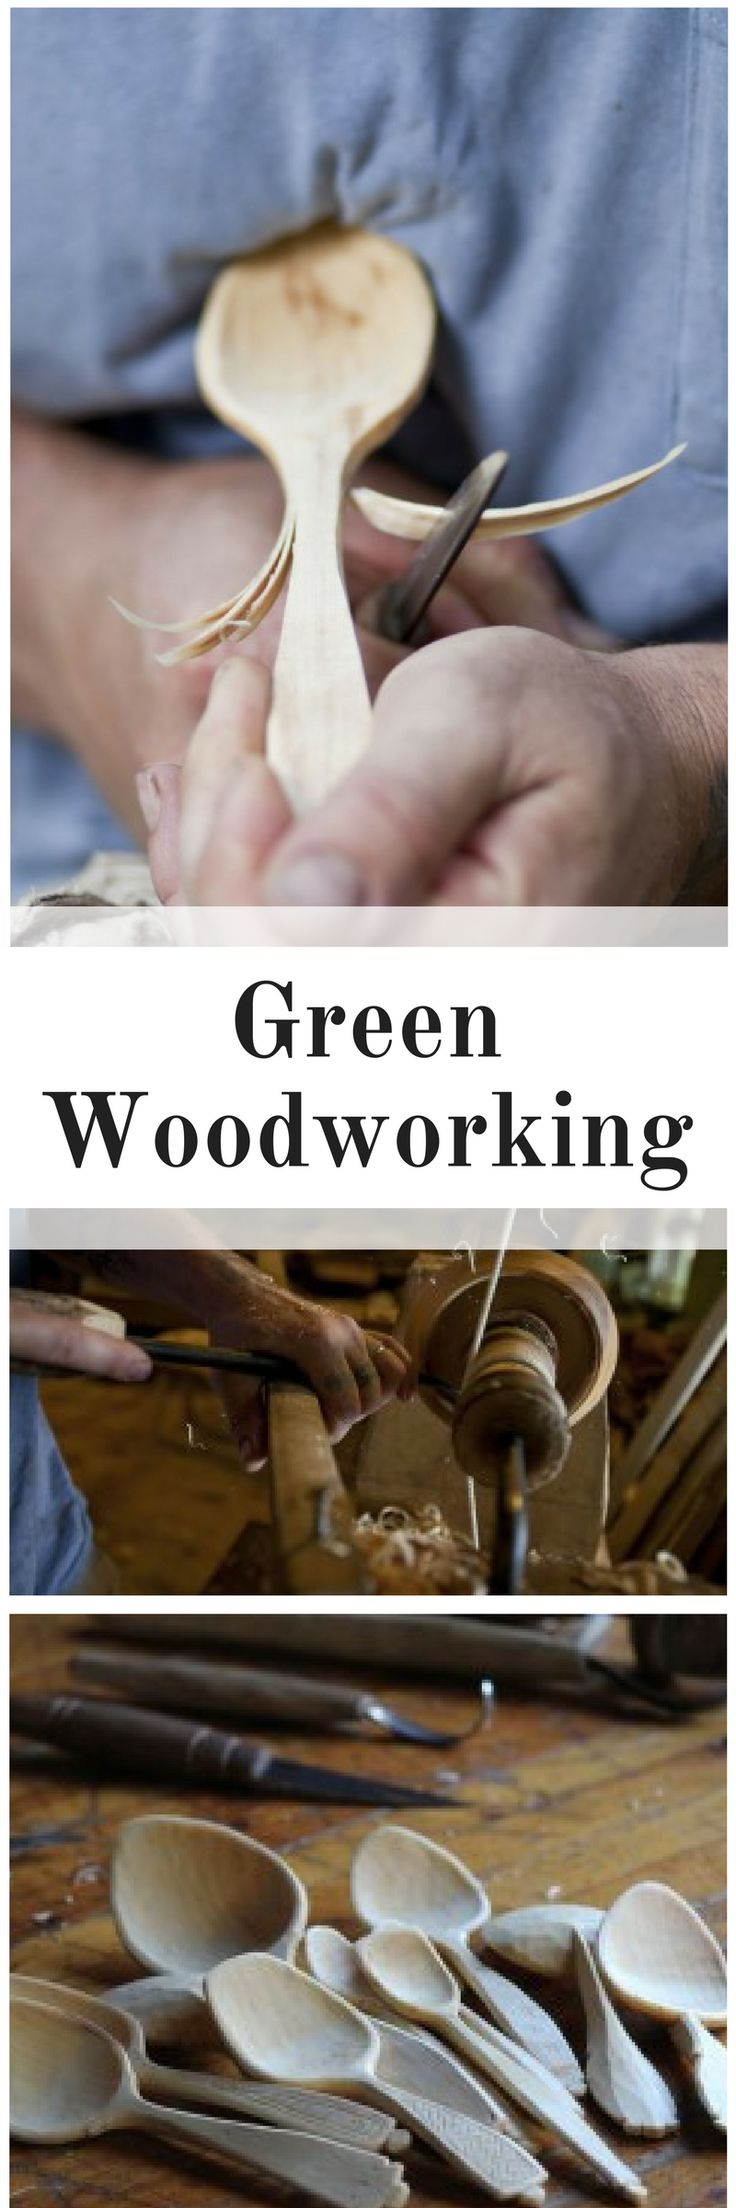 Green Woodworking - Linking Past and Future Interview with with Jarrod StoneDahl, a spoon carver and traditional green woodworker in northern Wisconsin.